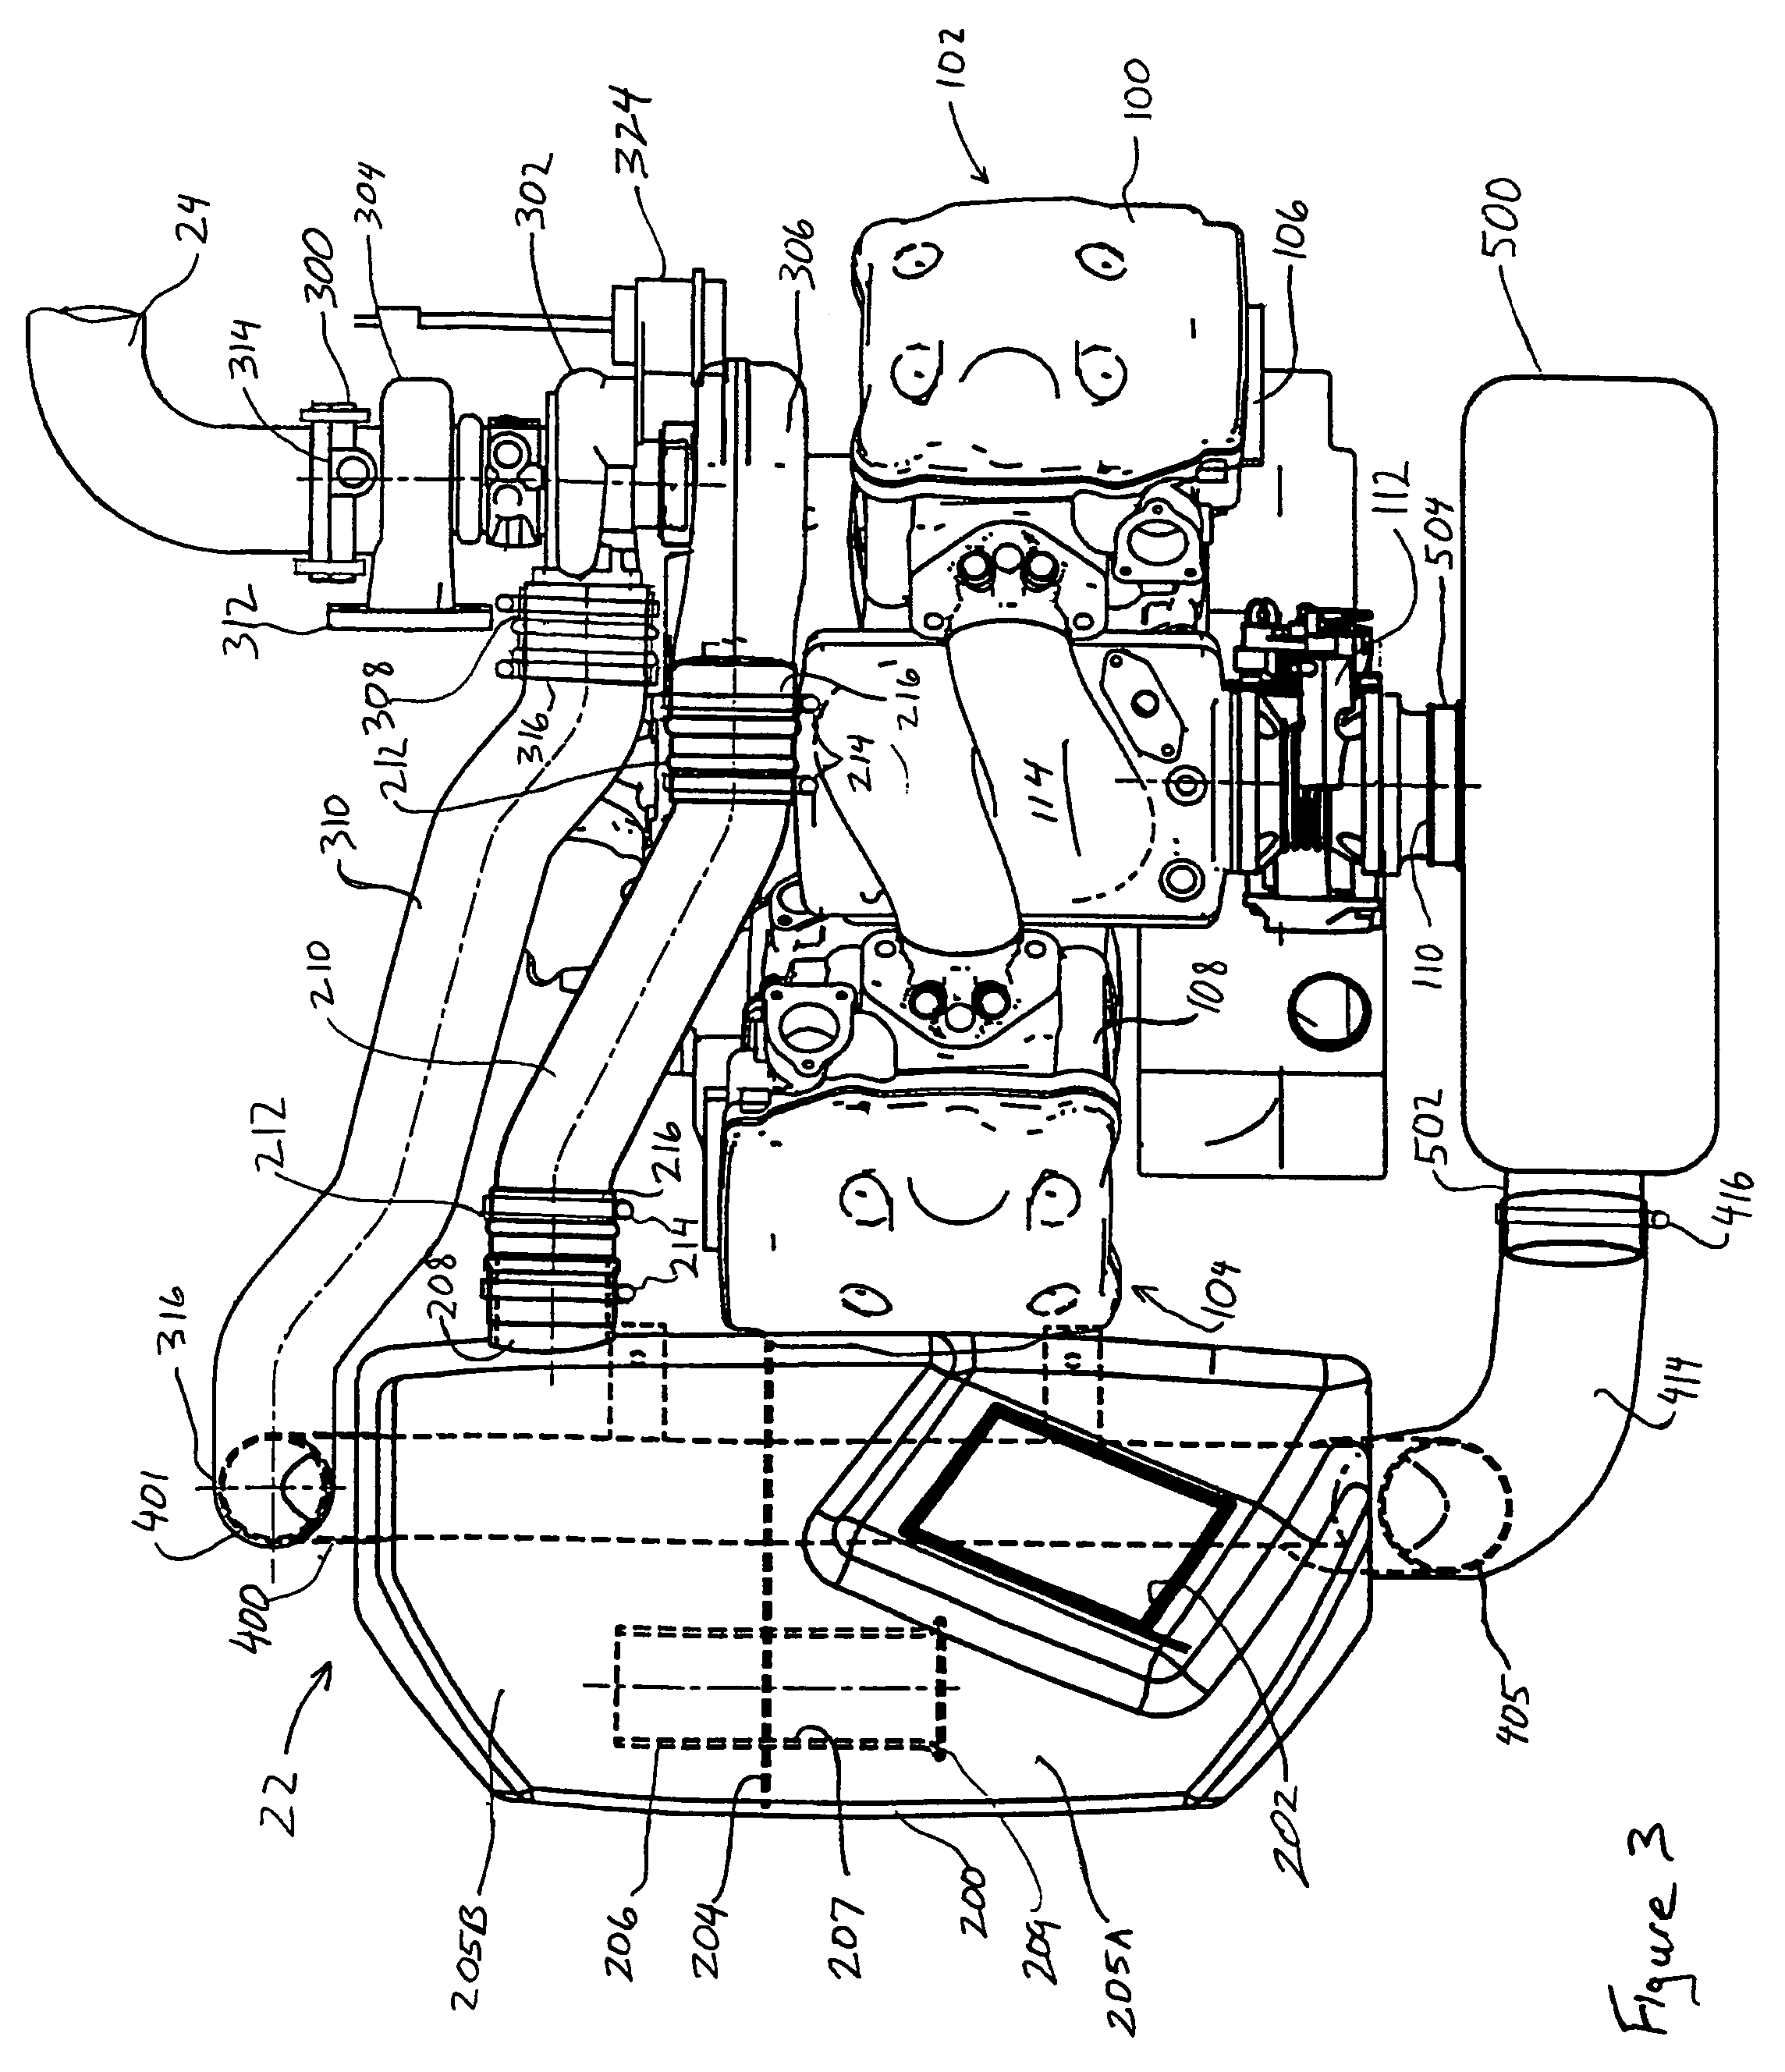 Paccar Fuel Filter Isuzufuelwiring Harness Diagram Images Filters Us07264075 20070904 D00003 Patent Us7264075 Snowmobile With A Turbocharged Four Stroke On Isuzu